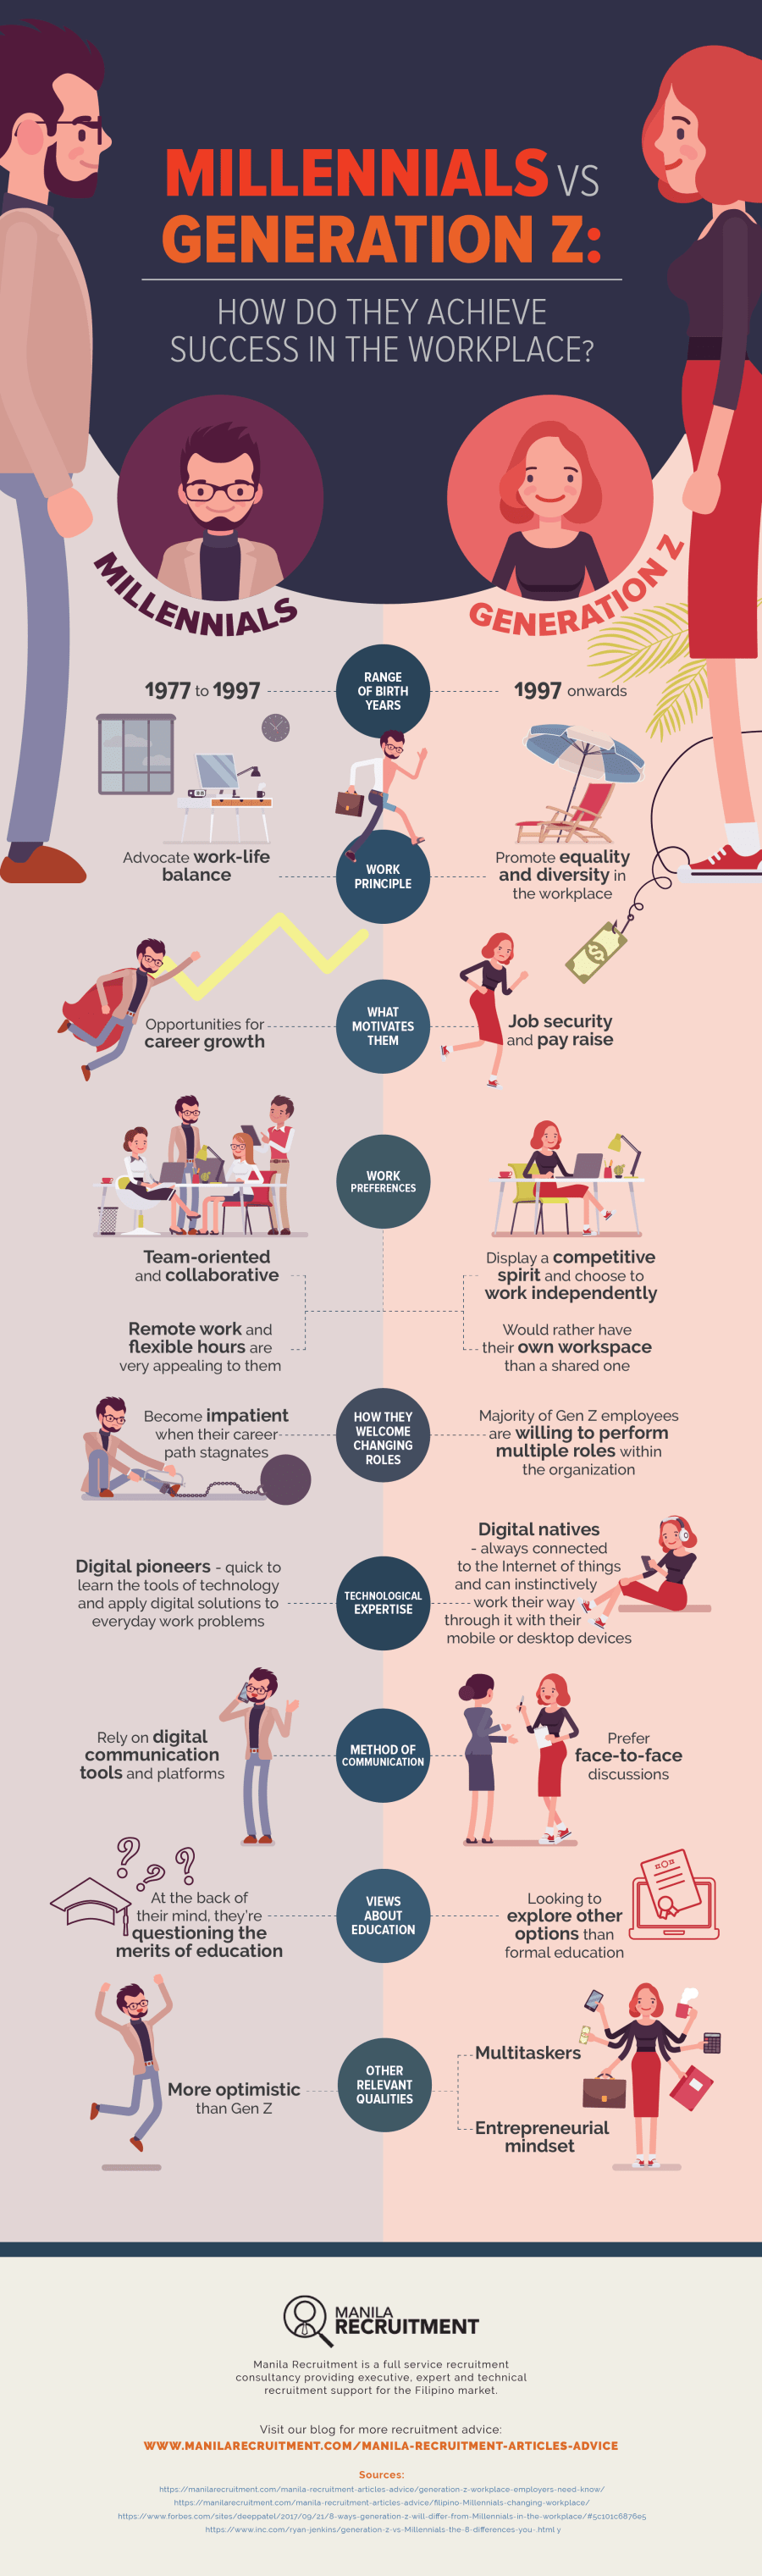 Millennials vs Generation Z- How Do They Achieve Success in the Workplace